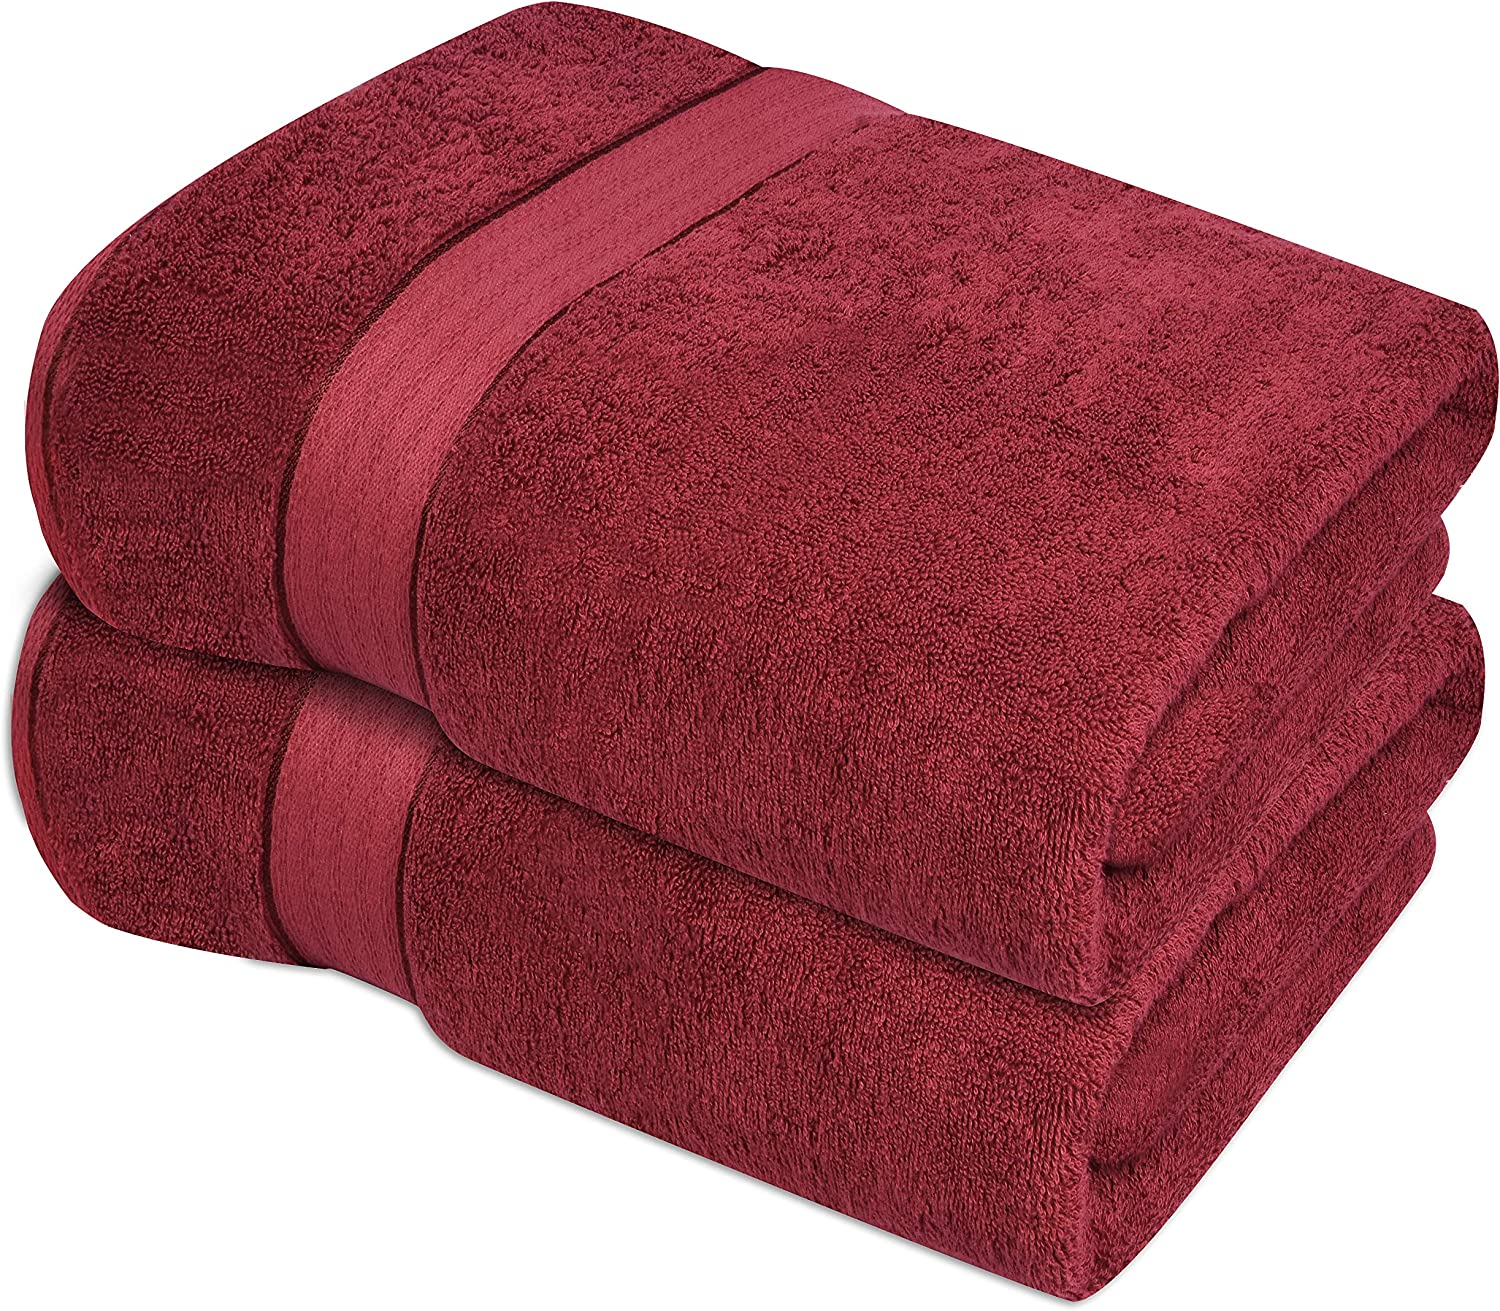 Luxury Hotel /& Spa Quality Durable Ultra Soft Highly Absorbent Burgundy GLAMBURG 700 GSM Premium Oversized Extra Large Cotton Bath Sheet 35x70-100/% Combed Cotton